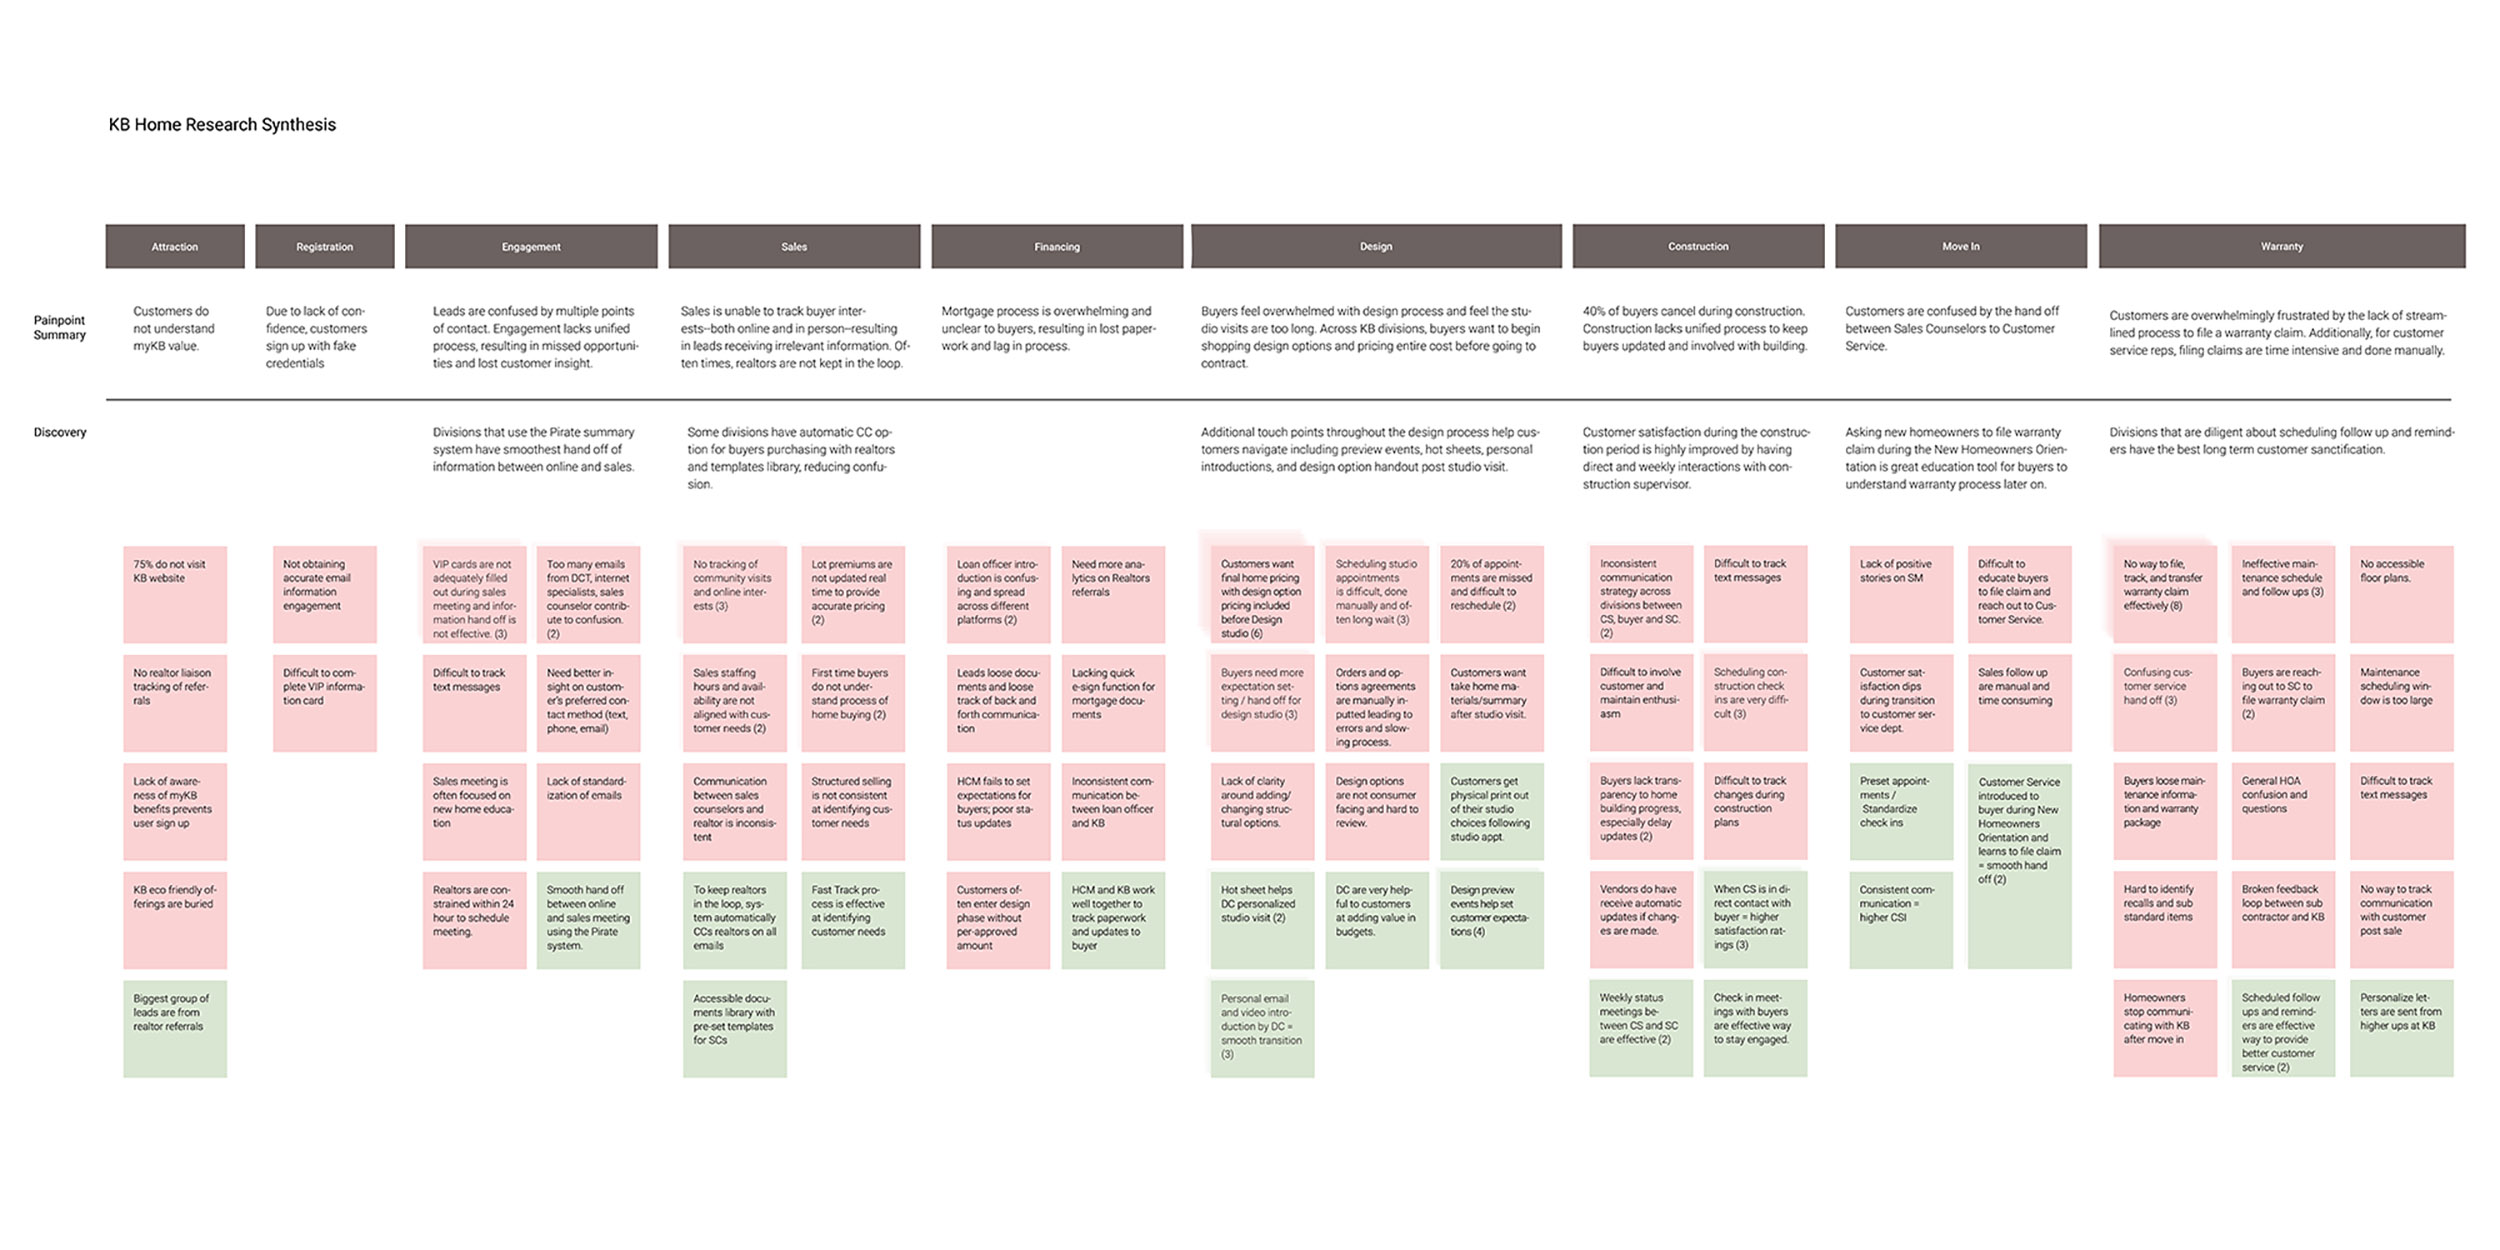 Painpoint overview   Based off the 20 interviews gathered from internal KB stakeholders, our team went through each interview transcription and documented instances of negative (pink) and positive (green) experiences. Each negative and positive experience was seperated into the corresponding phases that cooresponded to the journey map.  Using this framework, our team discovered recurring themes and pain points for each consumer phase.  The positive/negative experiences helped our team discover differences in the process across regions and document the most effective implemented solution.  For example, in Denver we found that the sales team employed a PIRATE card system to capture new lead information that would be passed to all memebers of the team. From this insight, our team created a feature for the MyKB app that digitized the PIRATE system to help sales counselors capture and share all necessary consumer information.